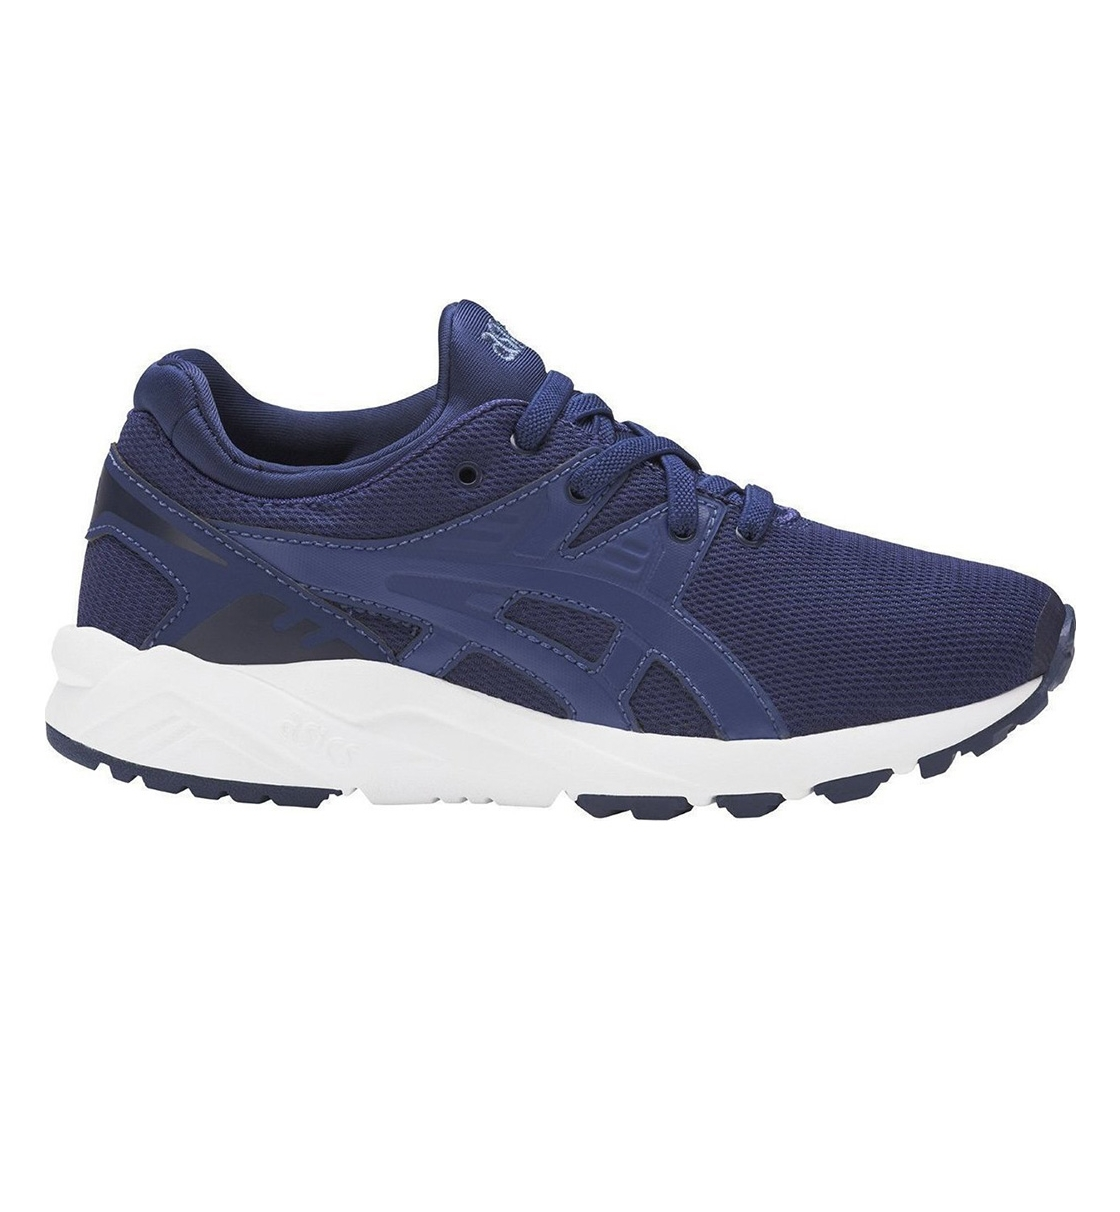 Bebe Παπούτσι Fw18 Gel-Kayano Trainer Evo Ps C7A1N